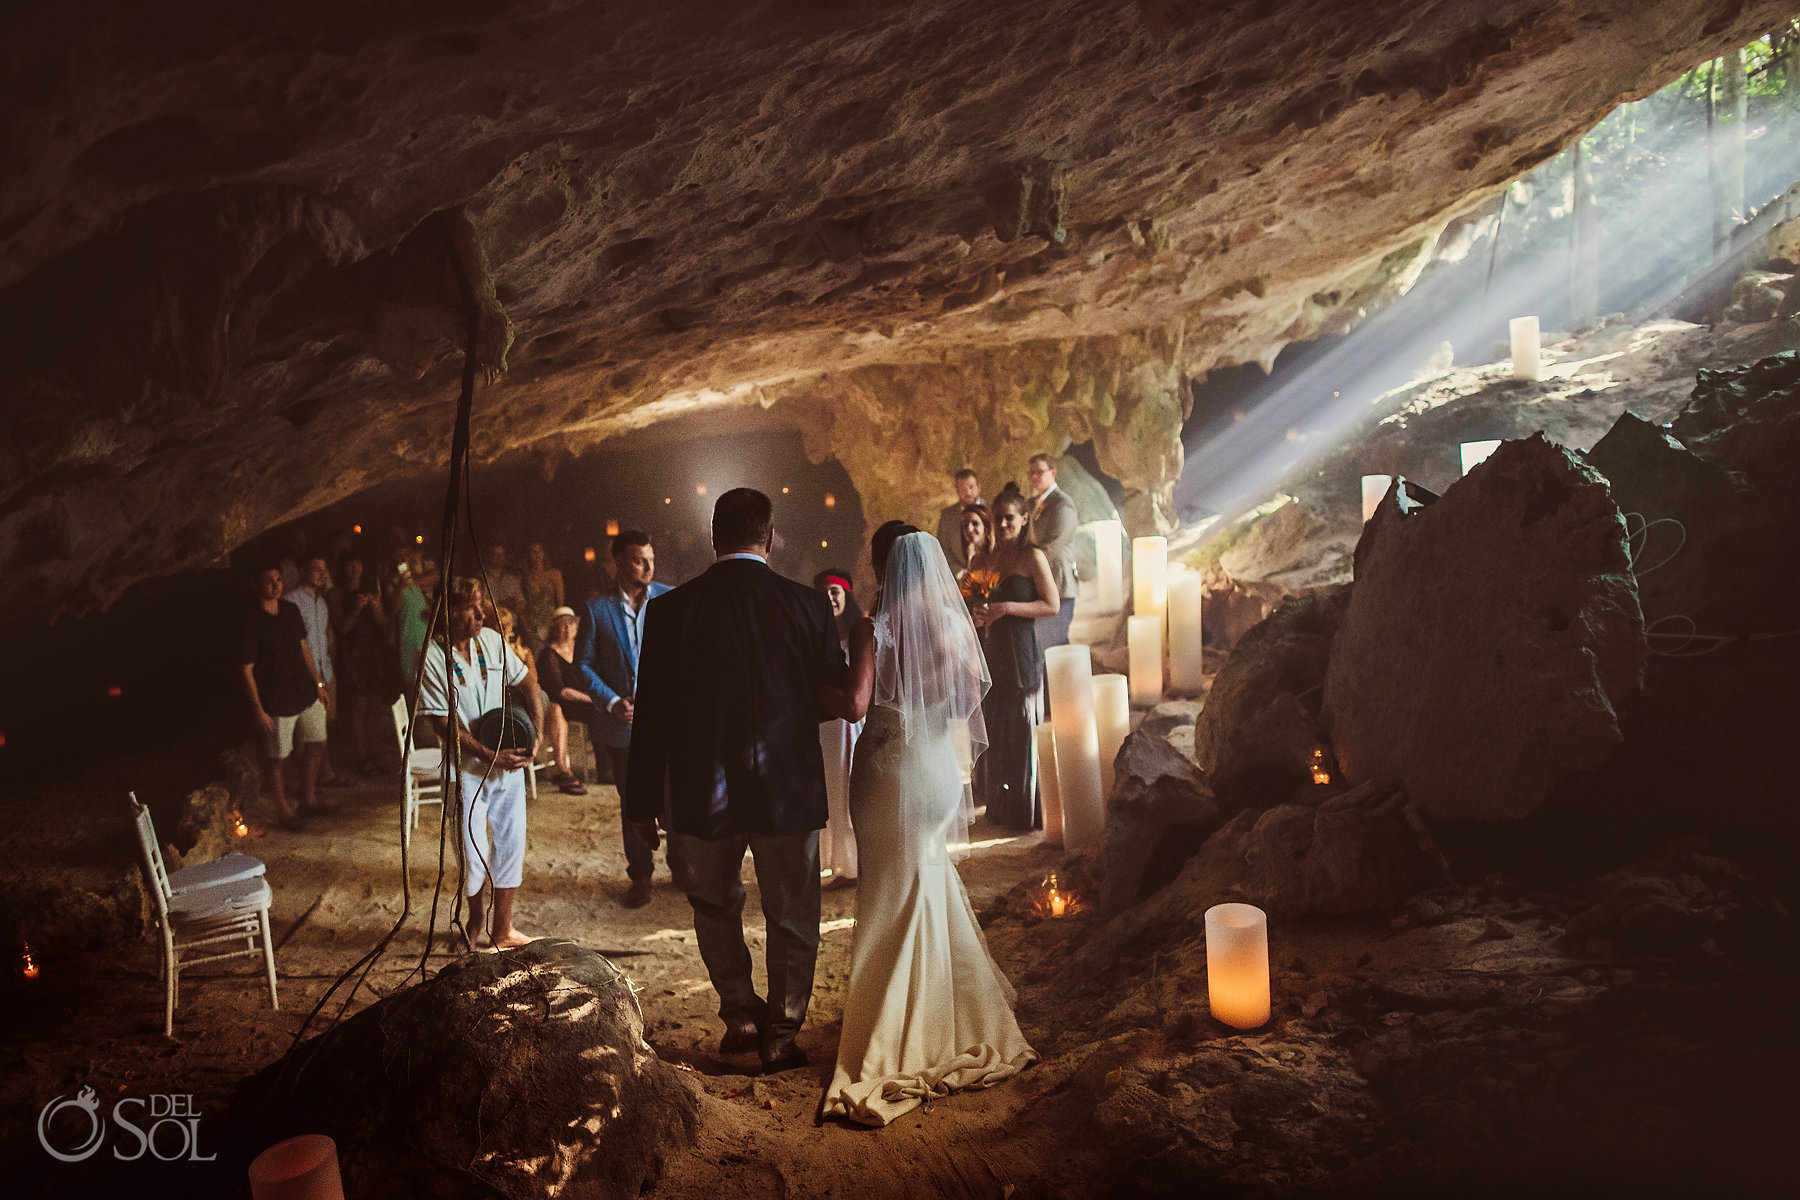 Underground Cave Wedding Photo Bride with father